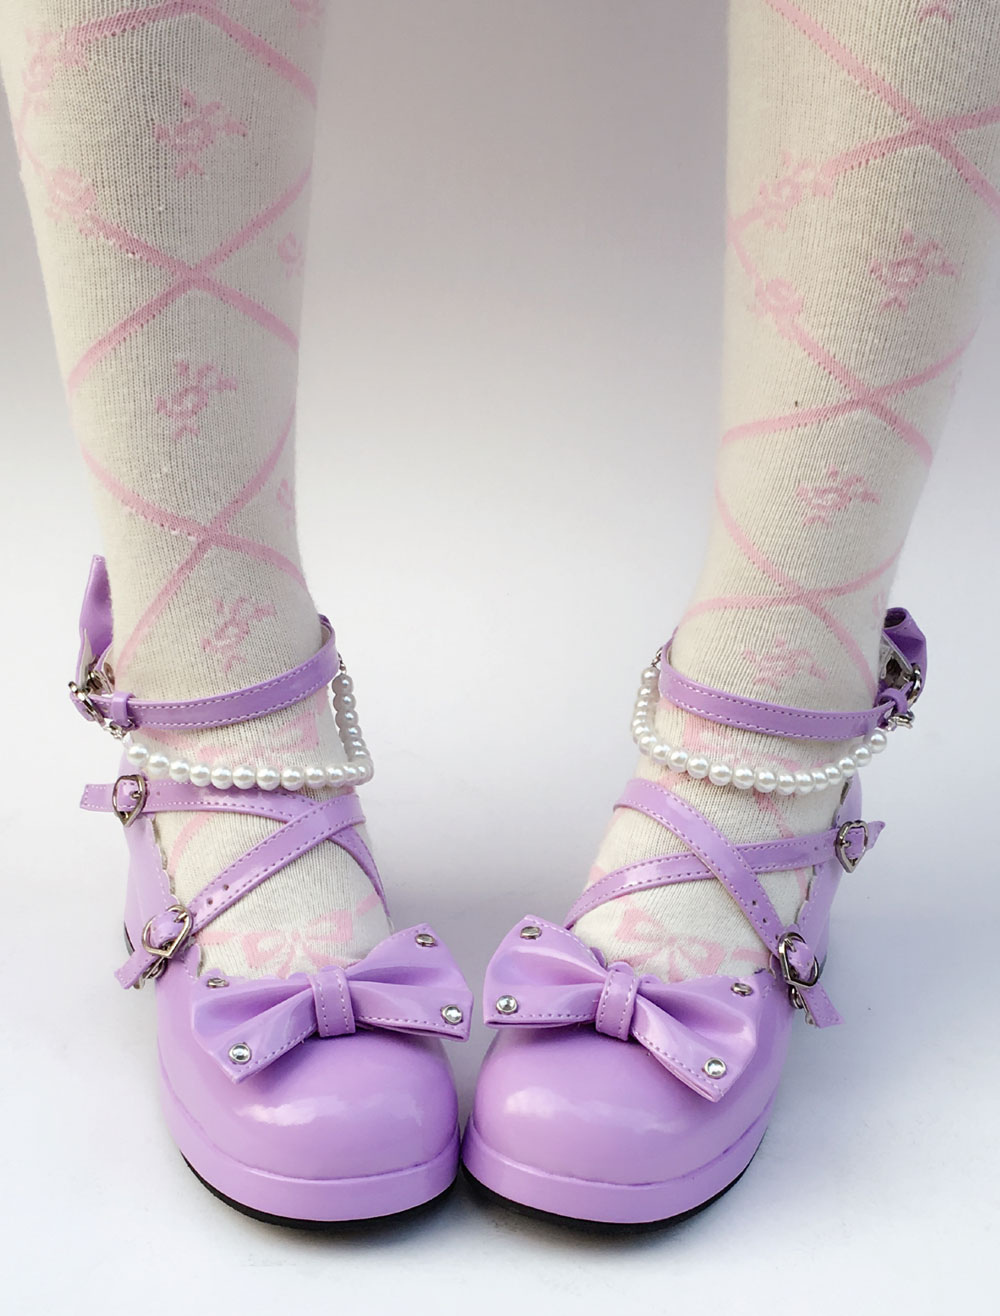 d2dcf9a7db8 Lolitashow Purple Lolita Shoes Sweet Chunky Heel Pearl Round Toe Bow Cross  Front Ankle Strap Lolita Pumps - Lolitashow.com